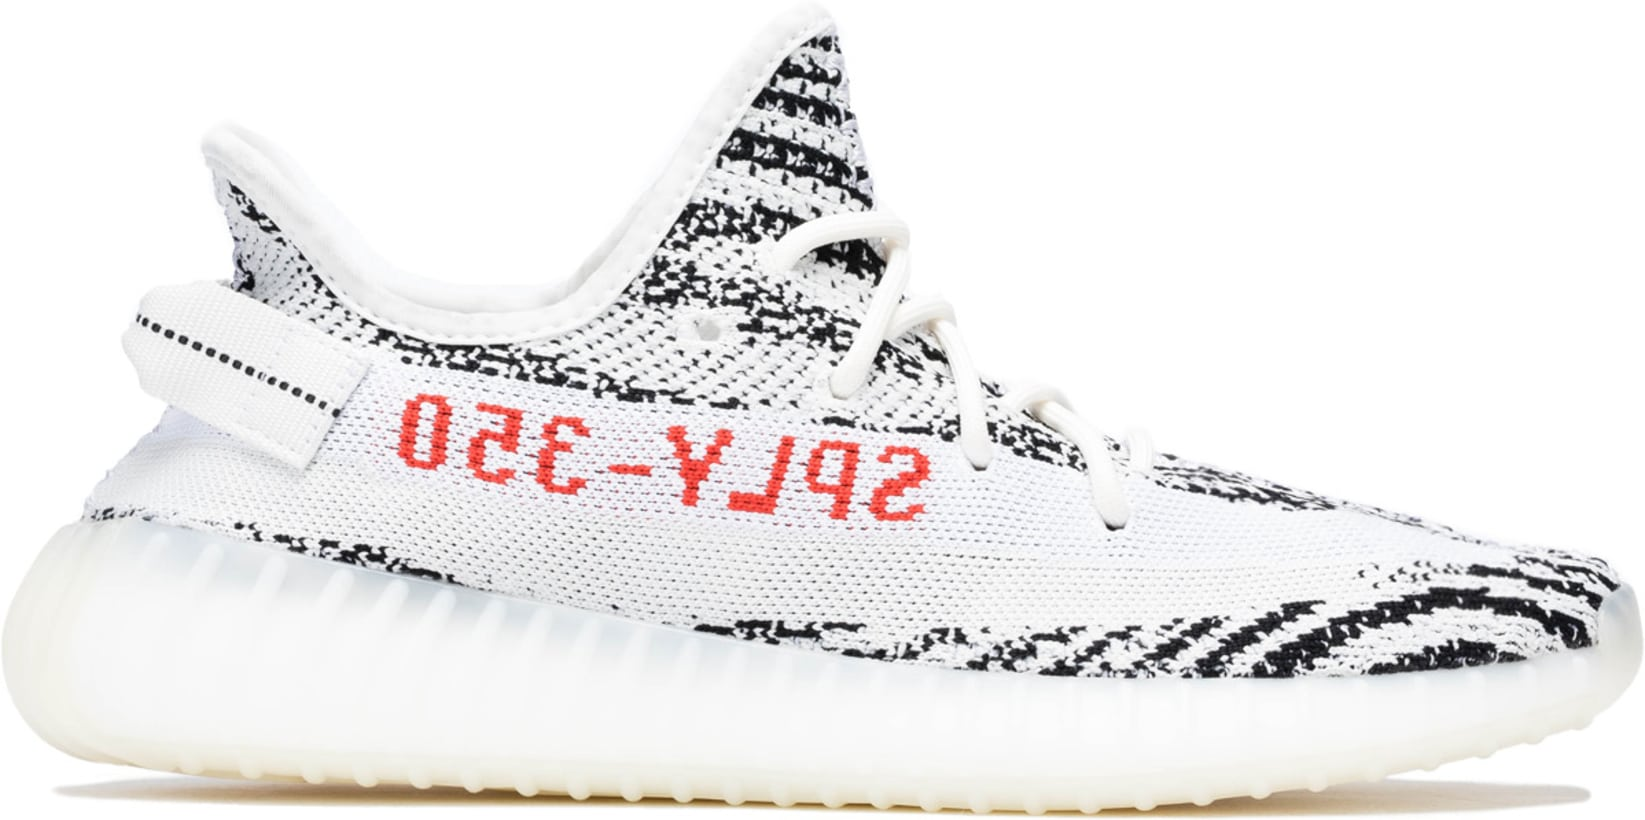 online store cec19 cd9d8 YEEZY. Yeezy Boost 350 V2 - White Core Black Red